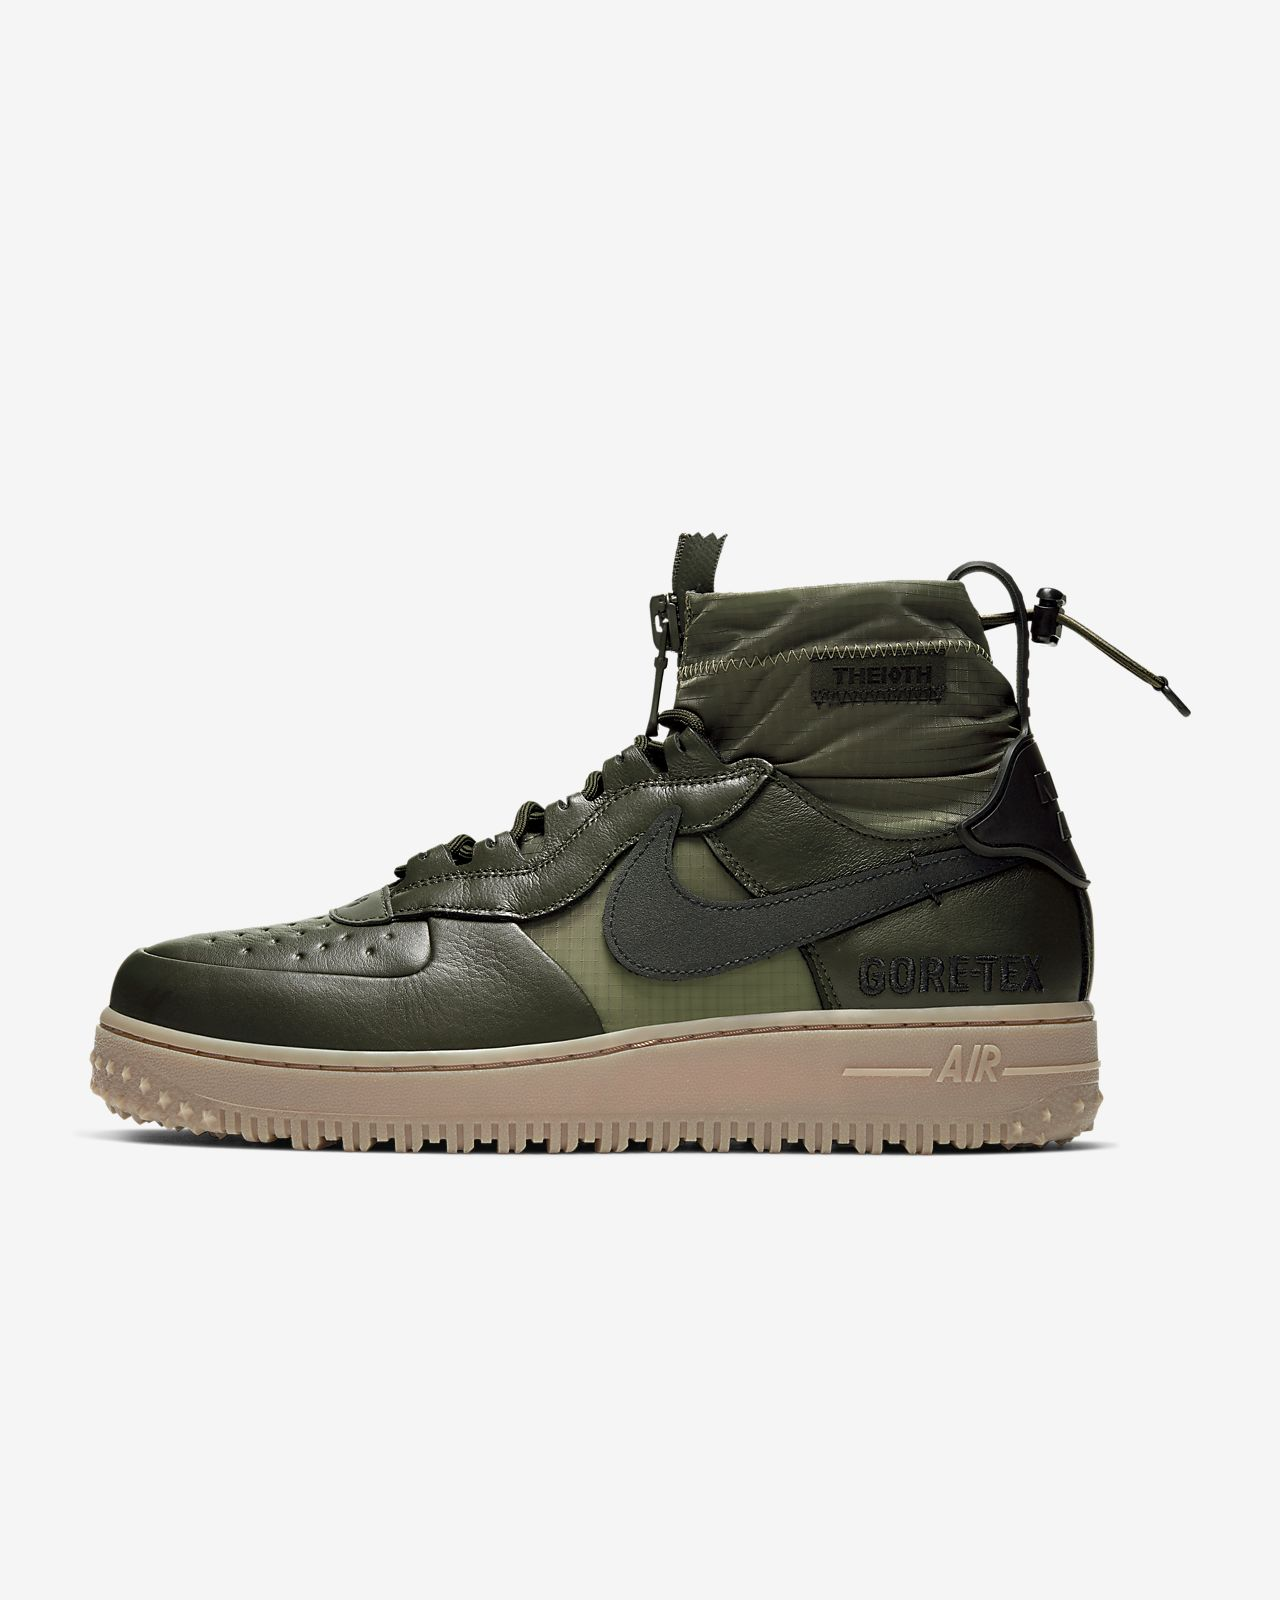 Nike Air Force 1 Winter GORE TEX Boot